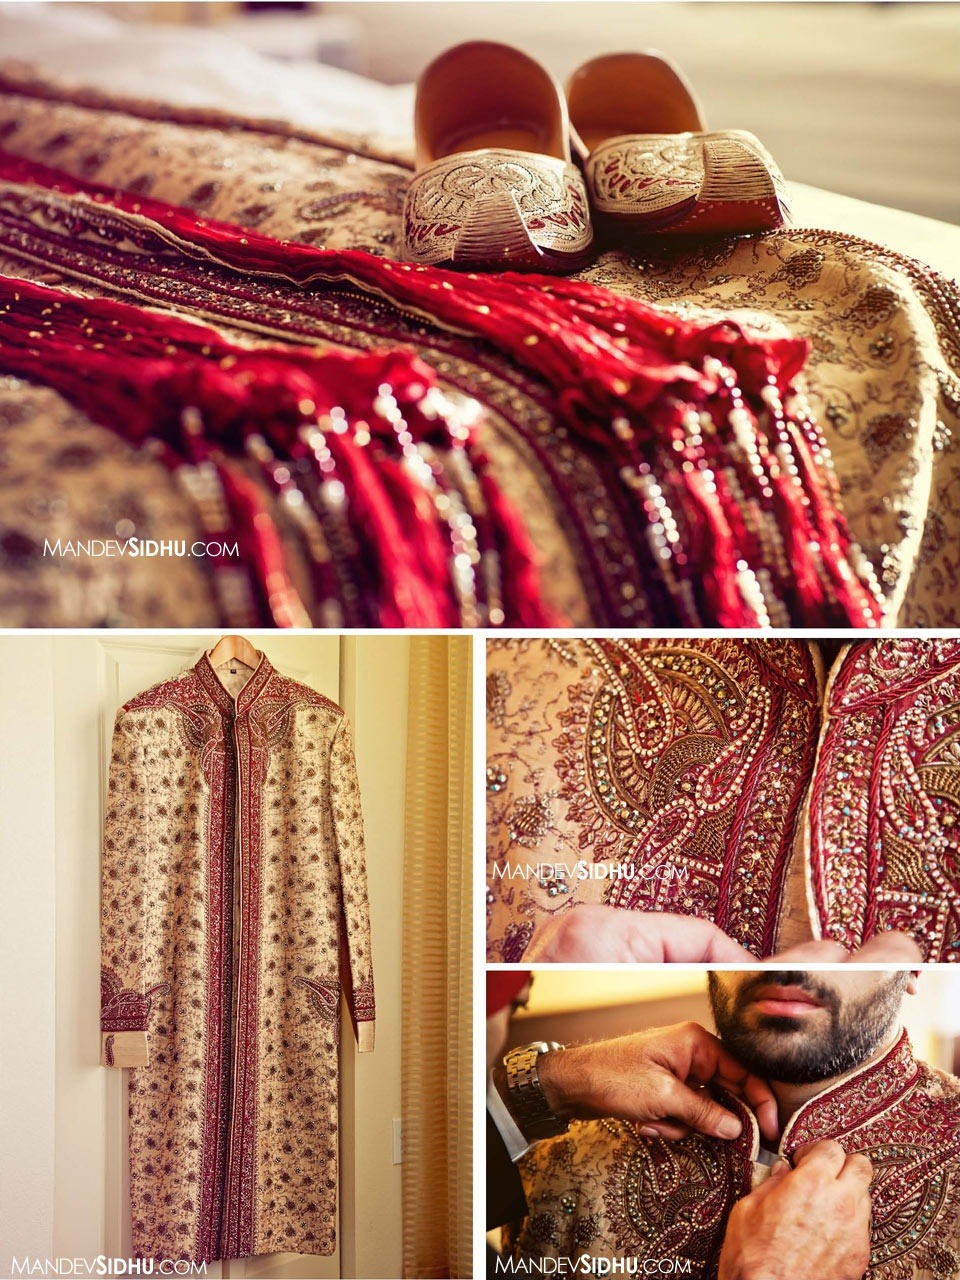 Which is the best place to buy groom wedding dress in hyderabad? - Quora